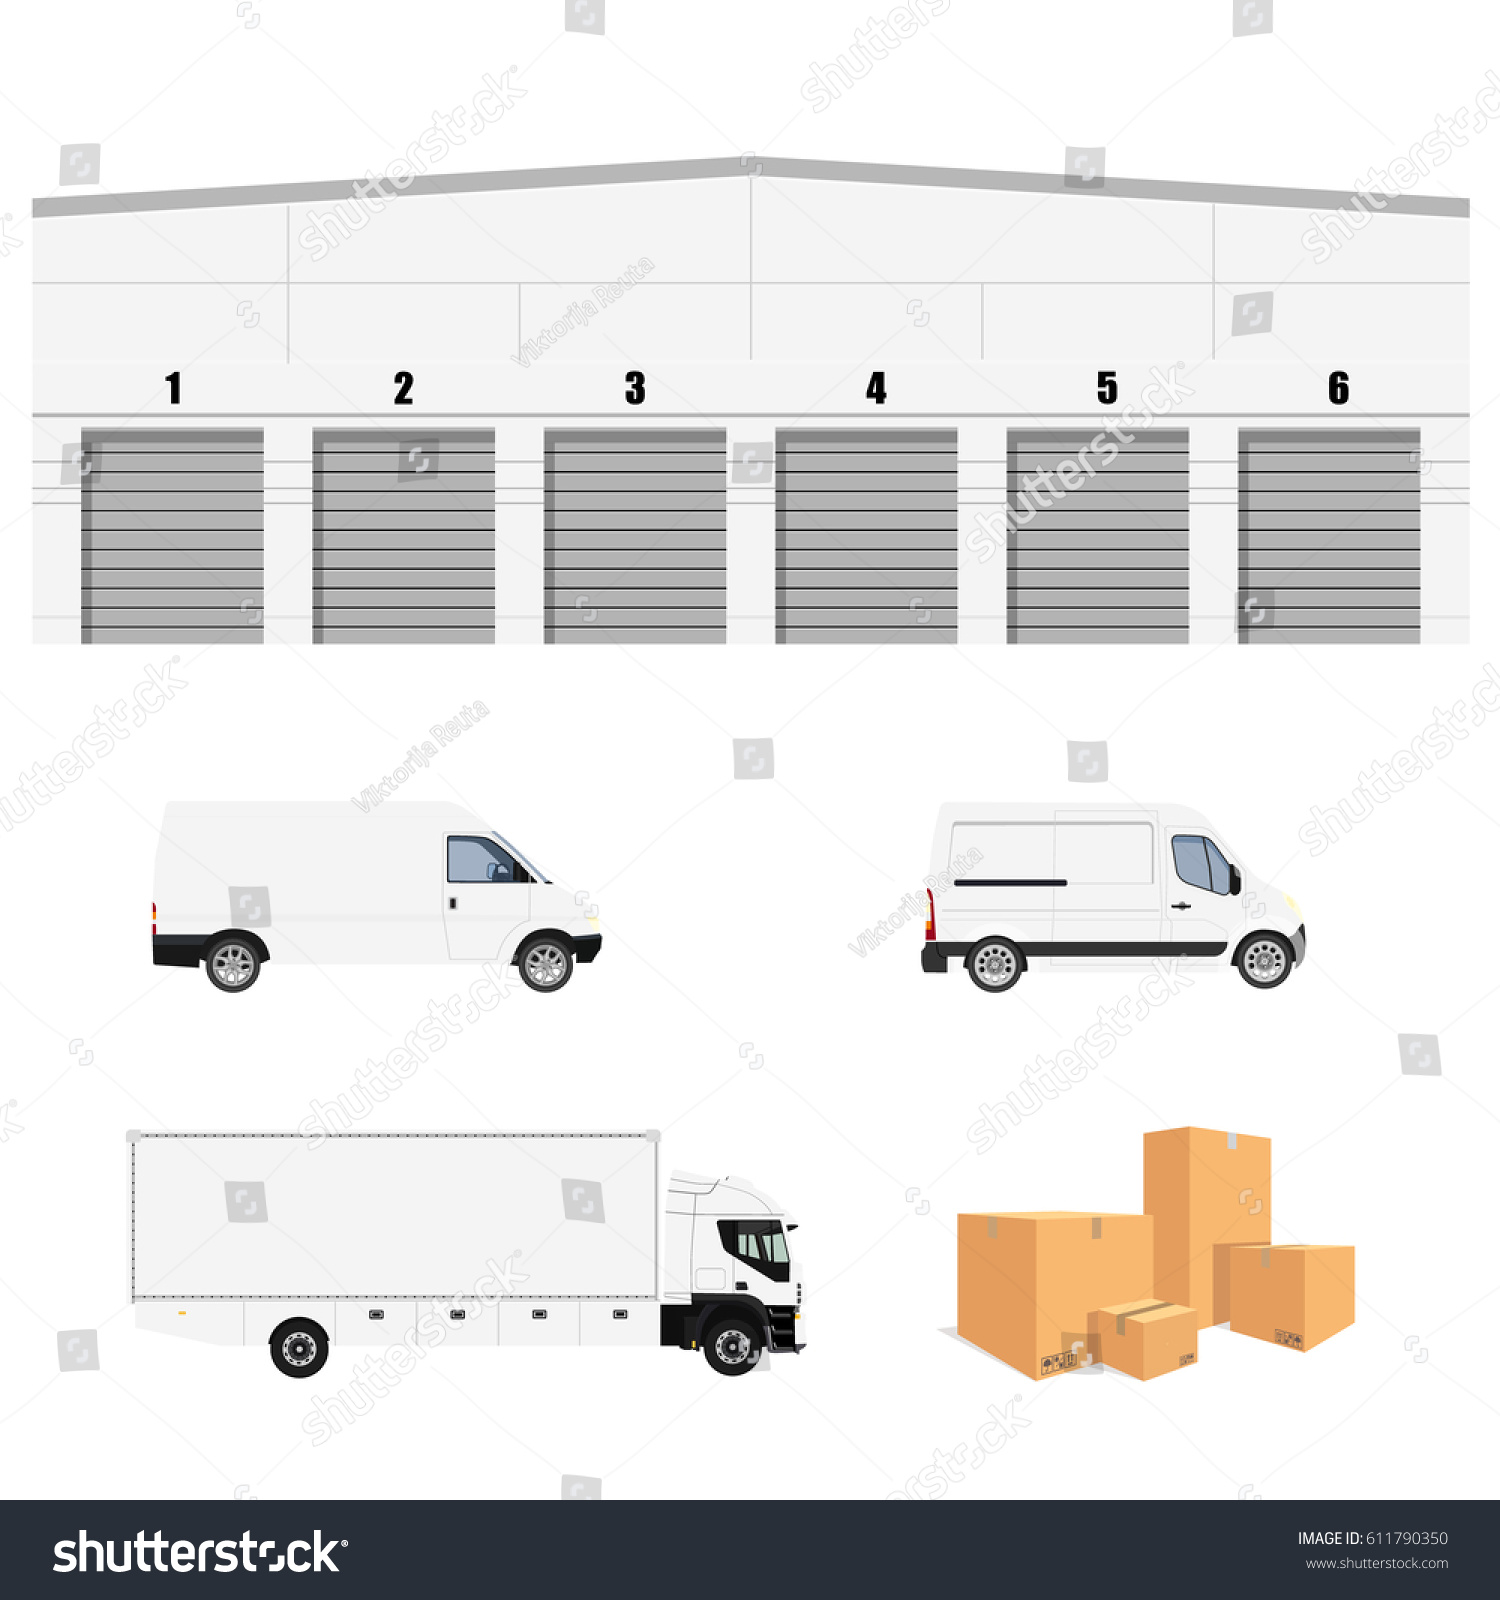 Vector Illustration Warehouse Cargo Delivery With Six Doors. Storage  Building. Cargo Truck, Two